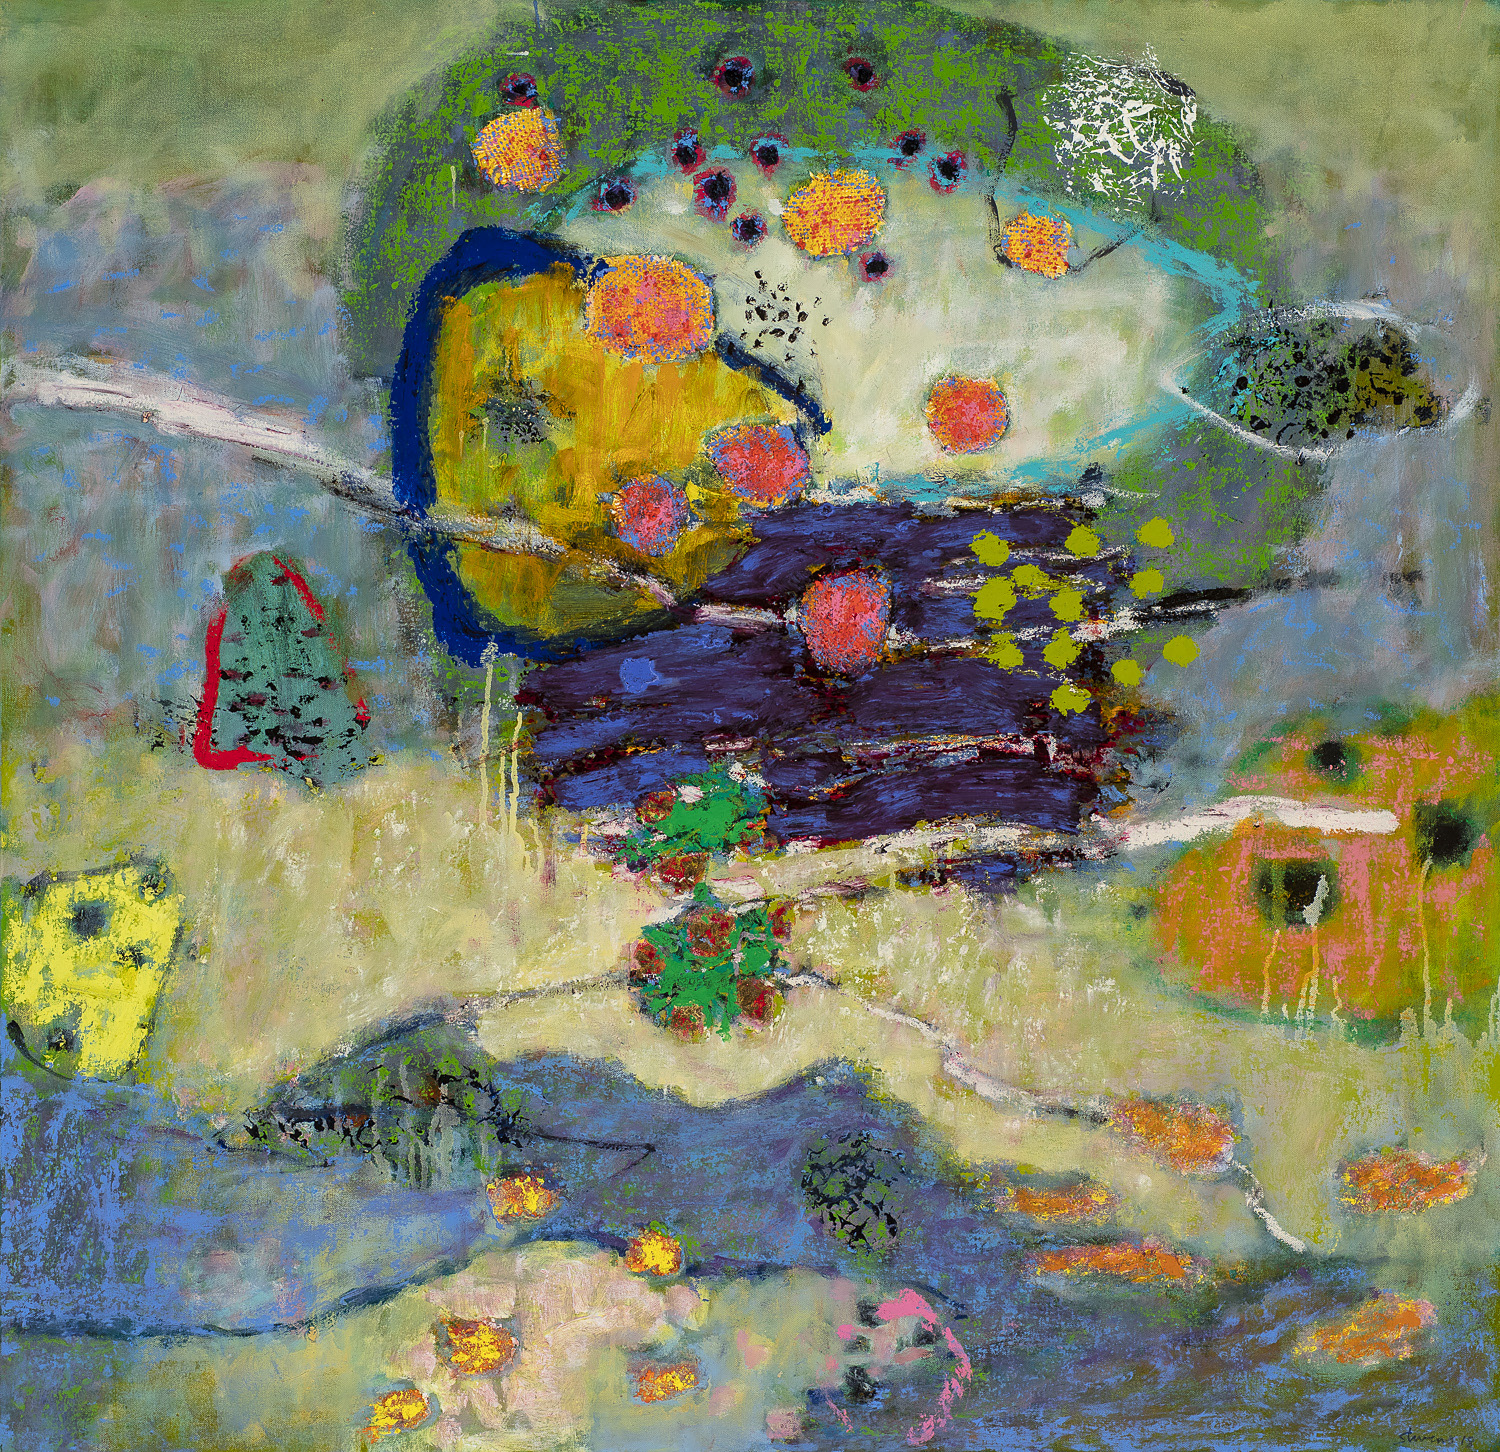 Serenade of Life  | oil on canvas | 36 x 36"